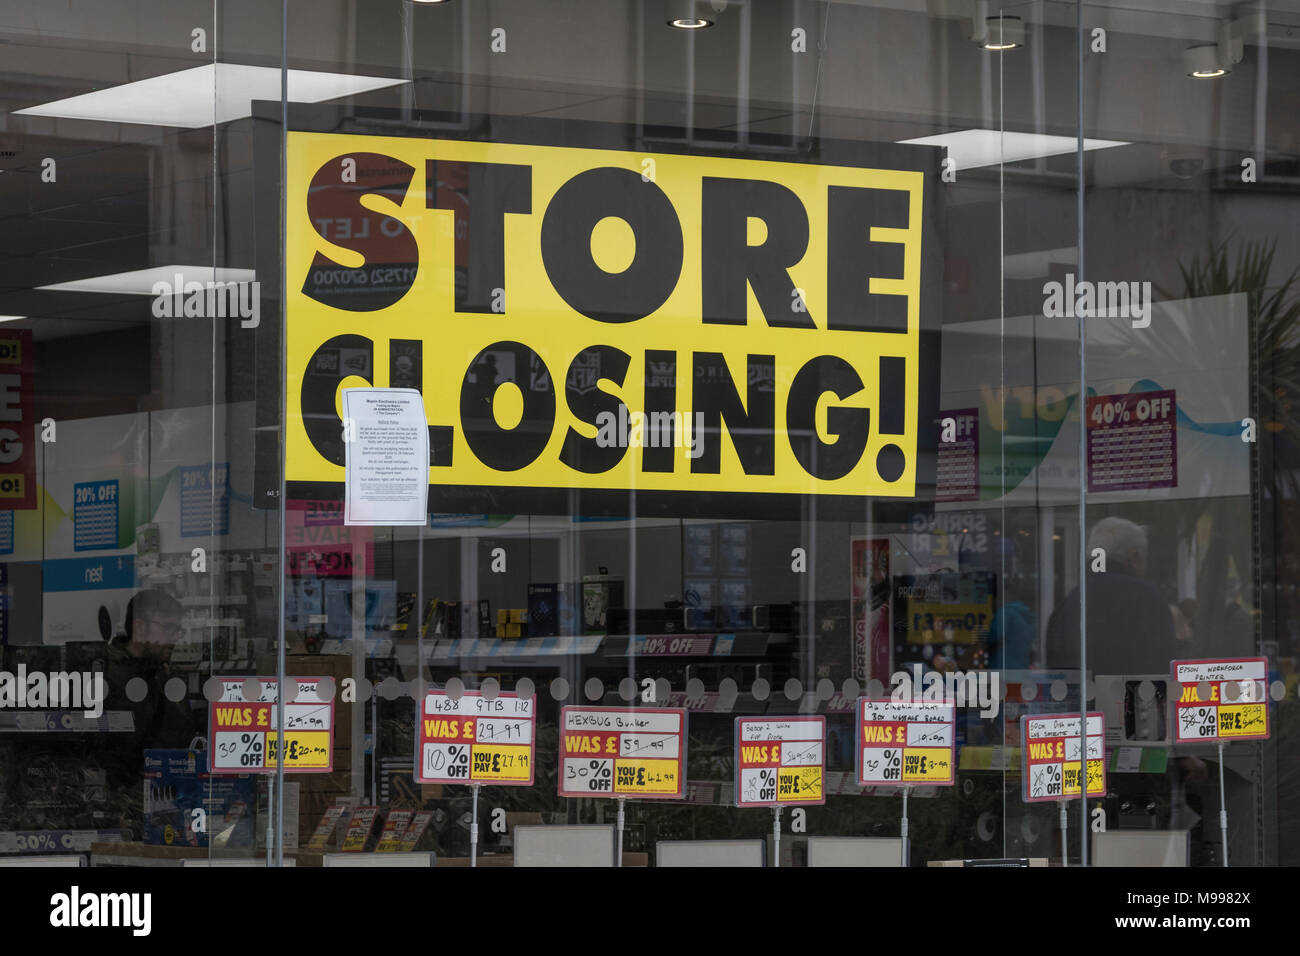 Poster in Maplin store Plymouth, Devon, after announcing closure of all stores. Metaphor for struggling high street retailers, death of high street. - Stock Image